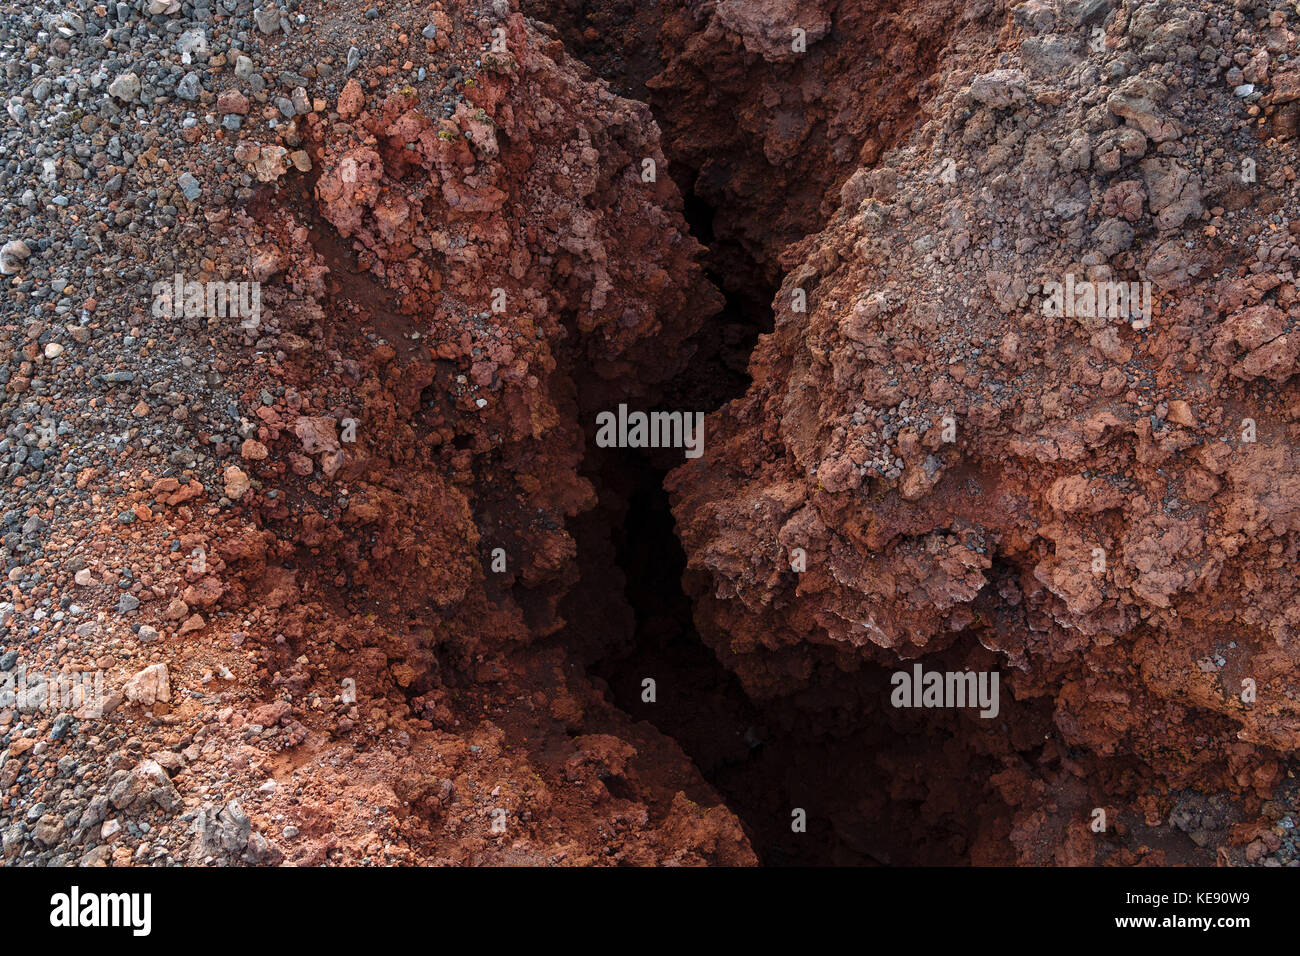 Solidified lava, volcanic vent at the summit of the volcano Hekla, South Iceland, Iceland - Stock Image